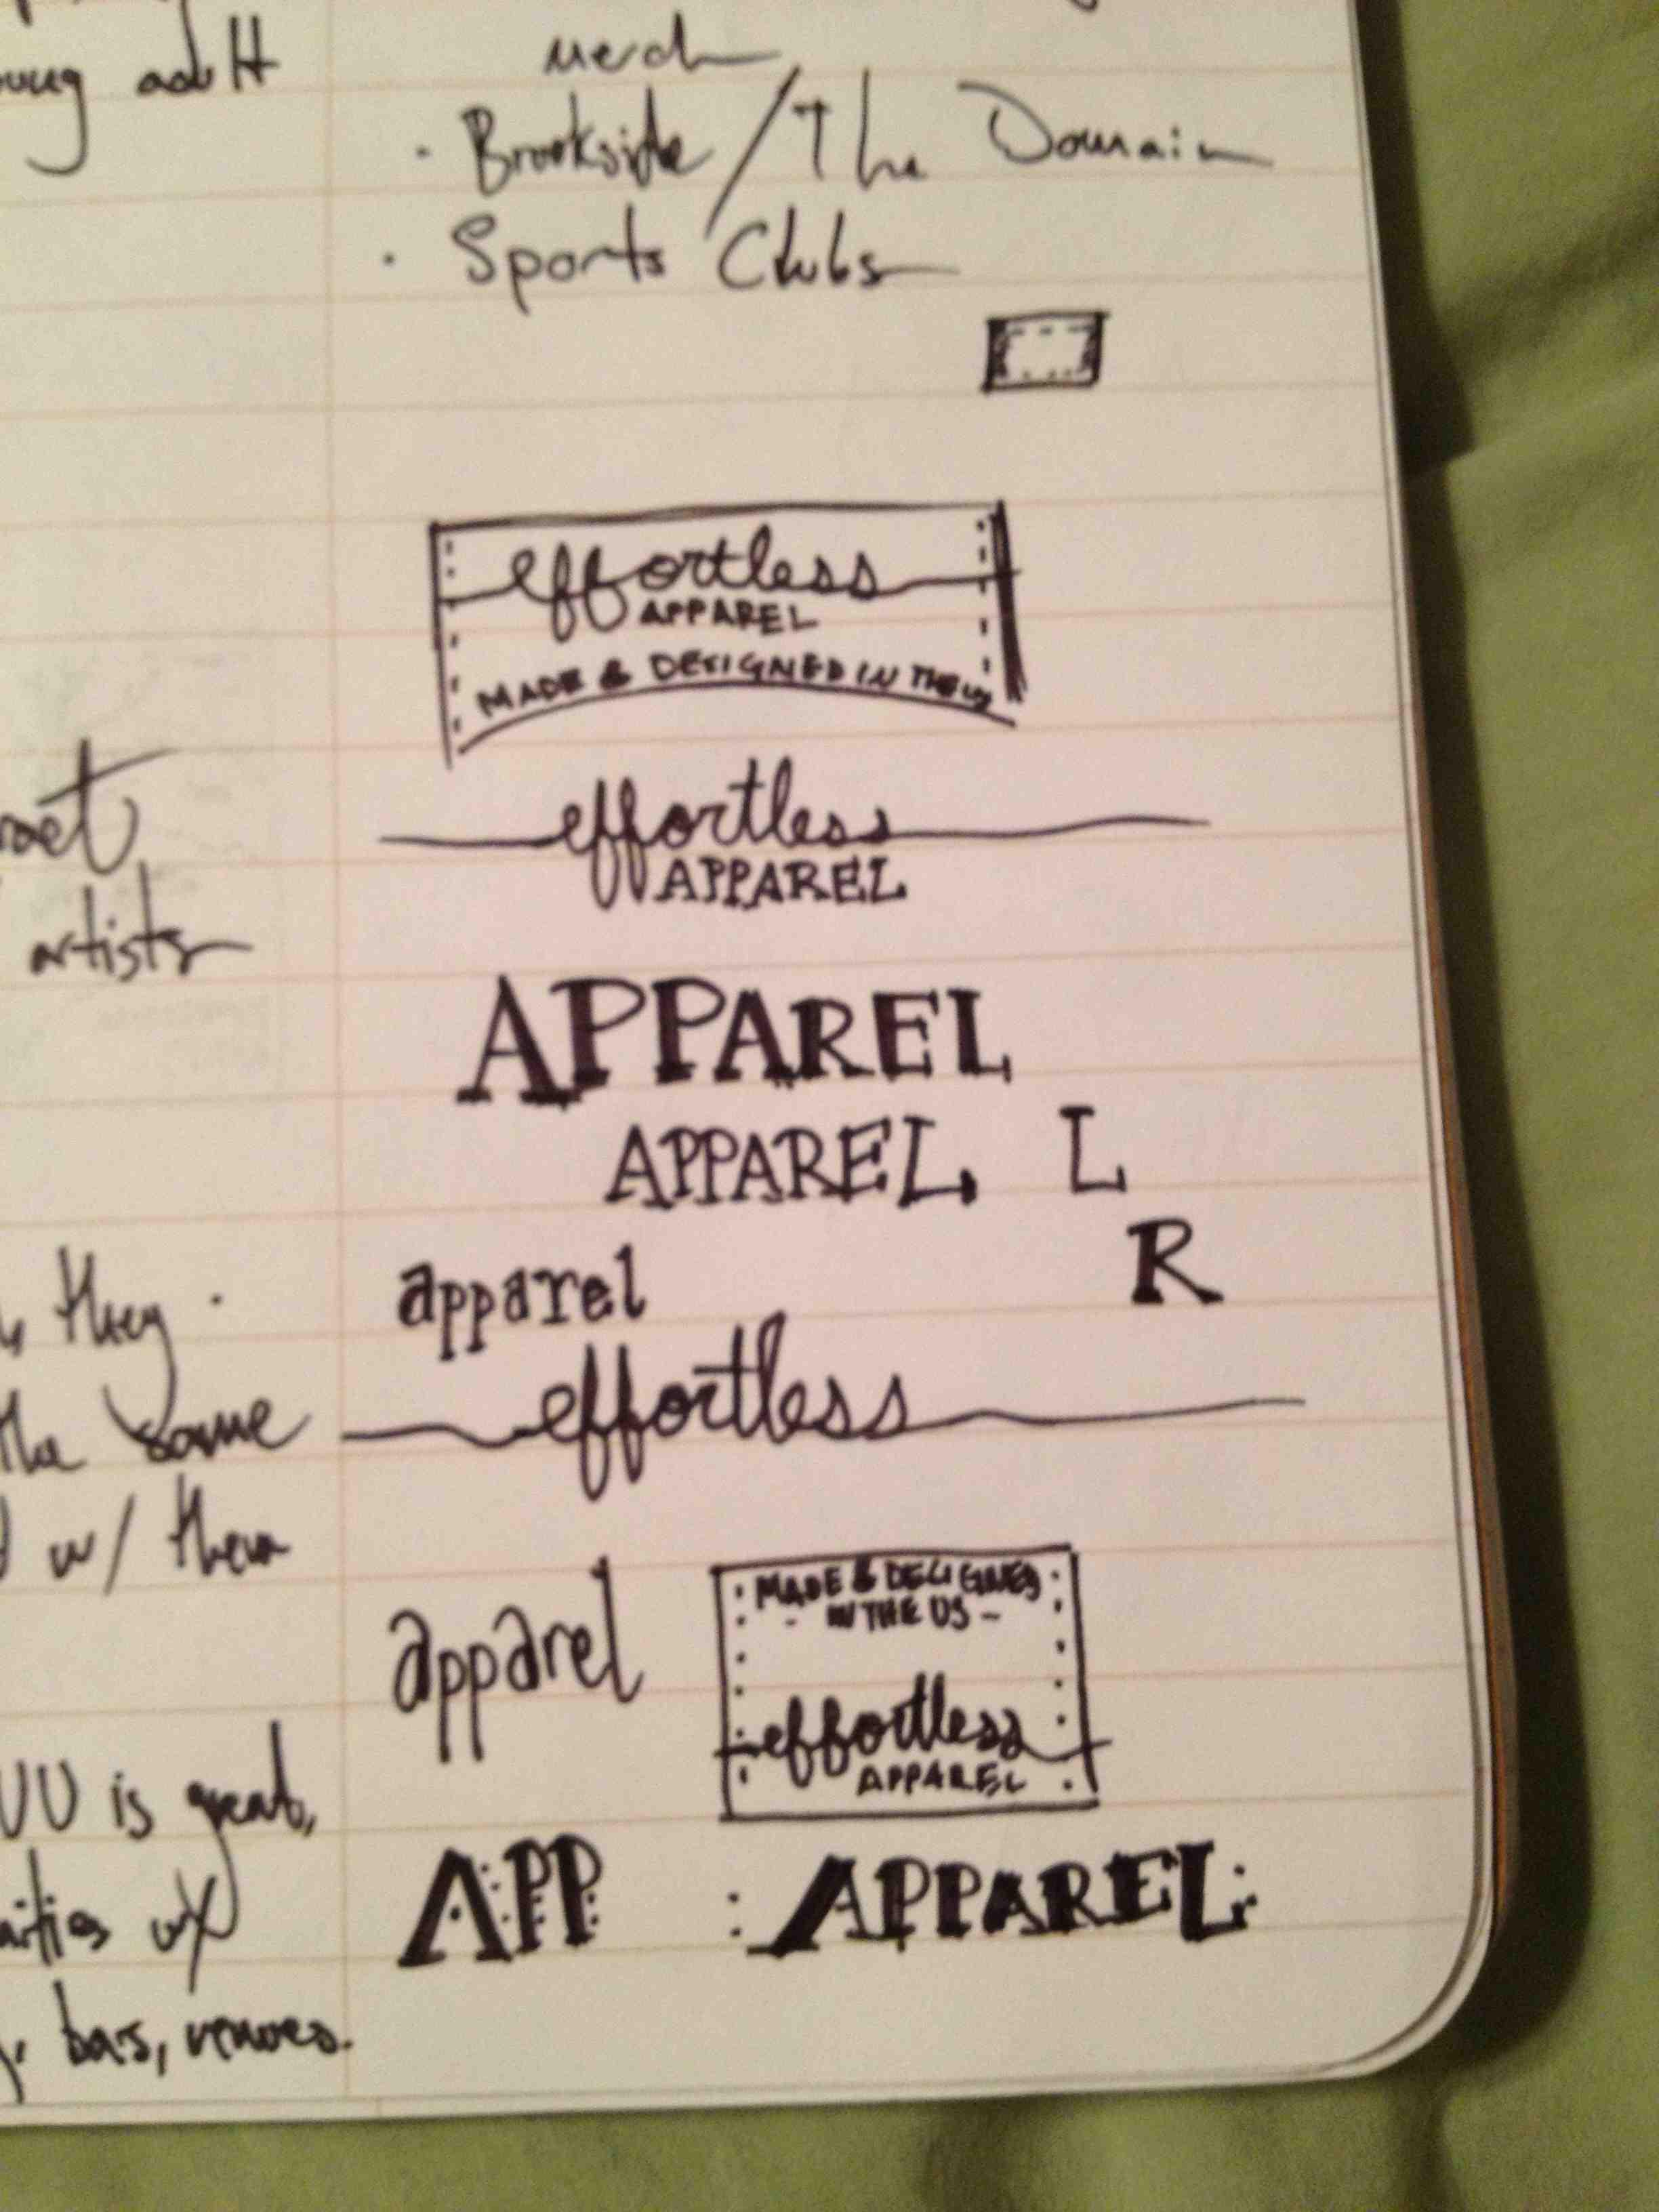 effortless apparel Clothing Tag - image 2 - student project